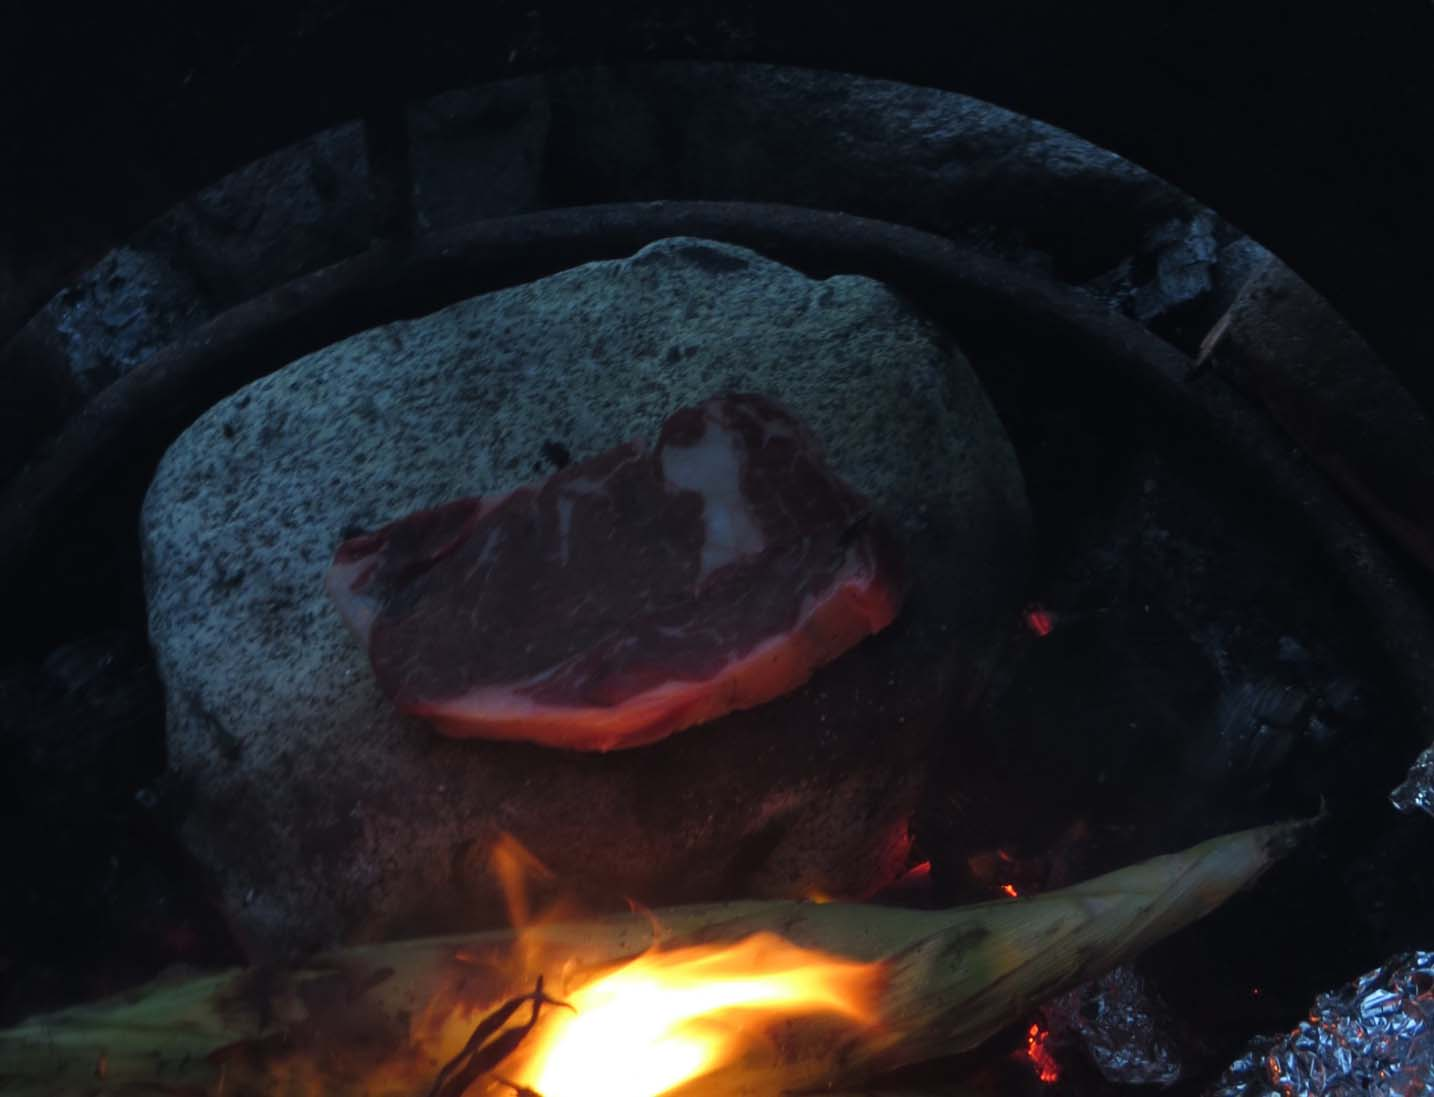 Steak cooking on stone in campfire